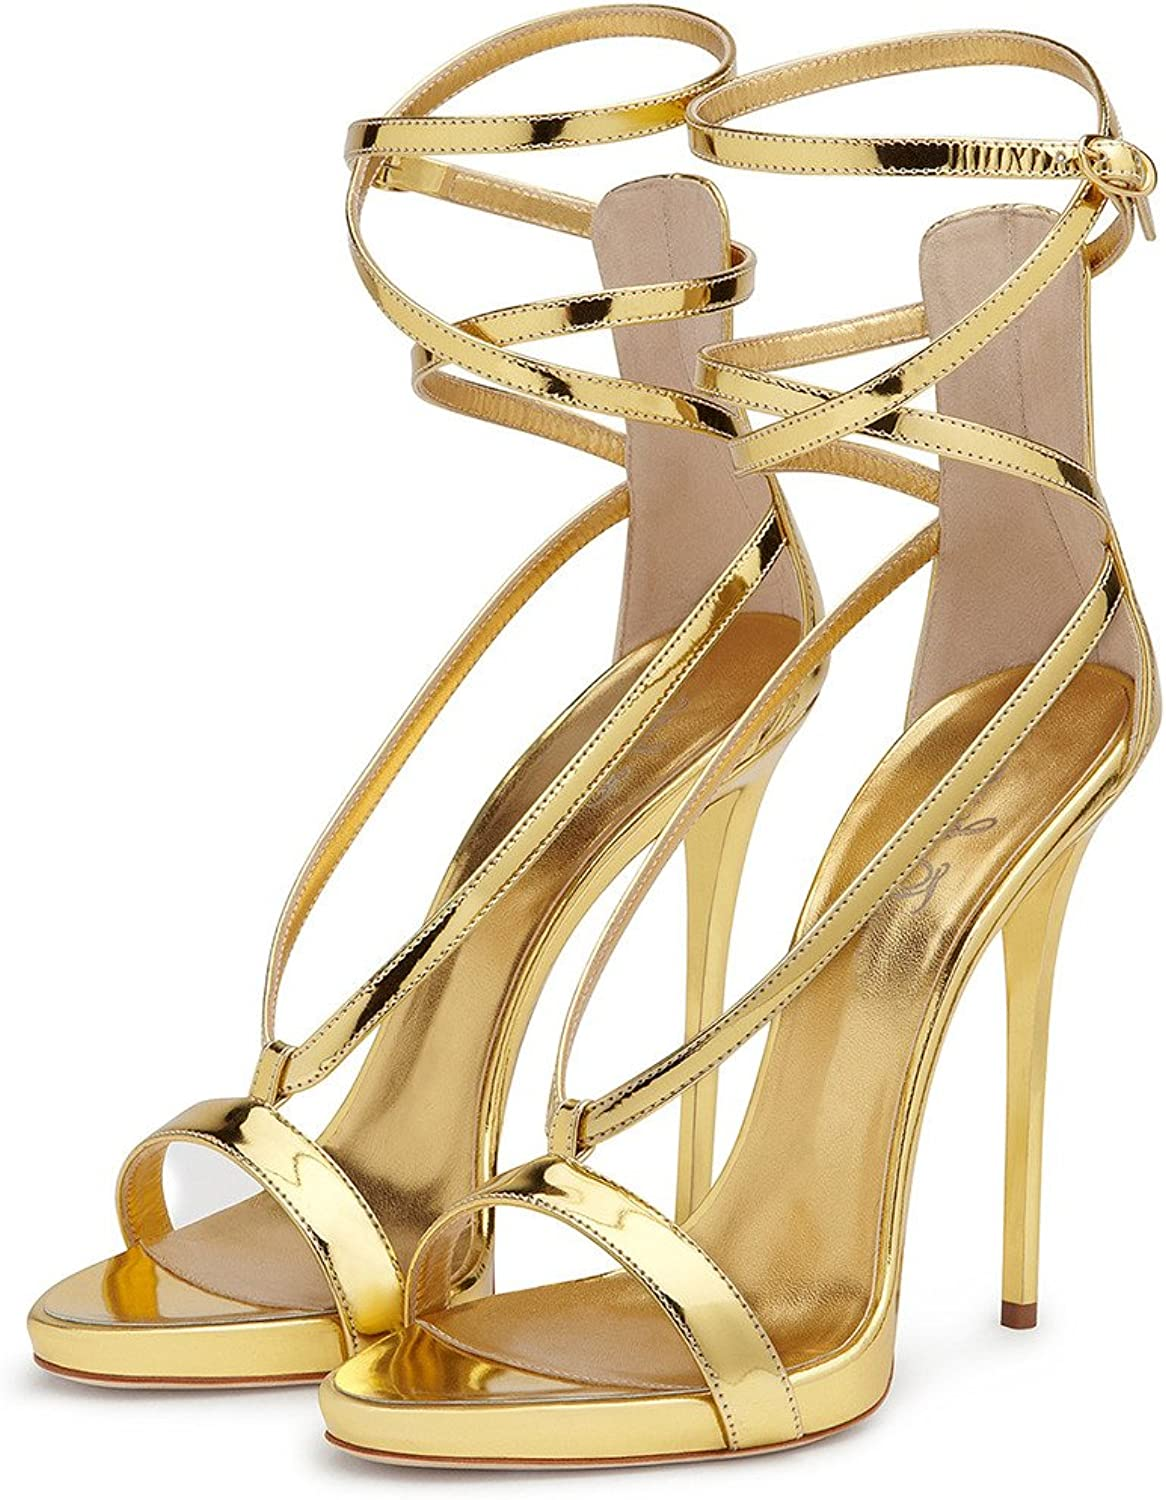 Amy Q Summer Open Toe Ankle Strap Buckle High Heel Gladiator Sandals Women for Party Dress shoes